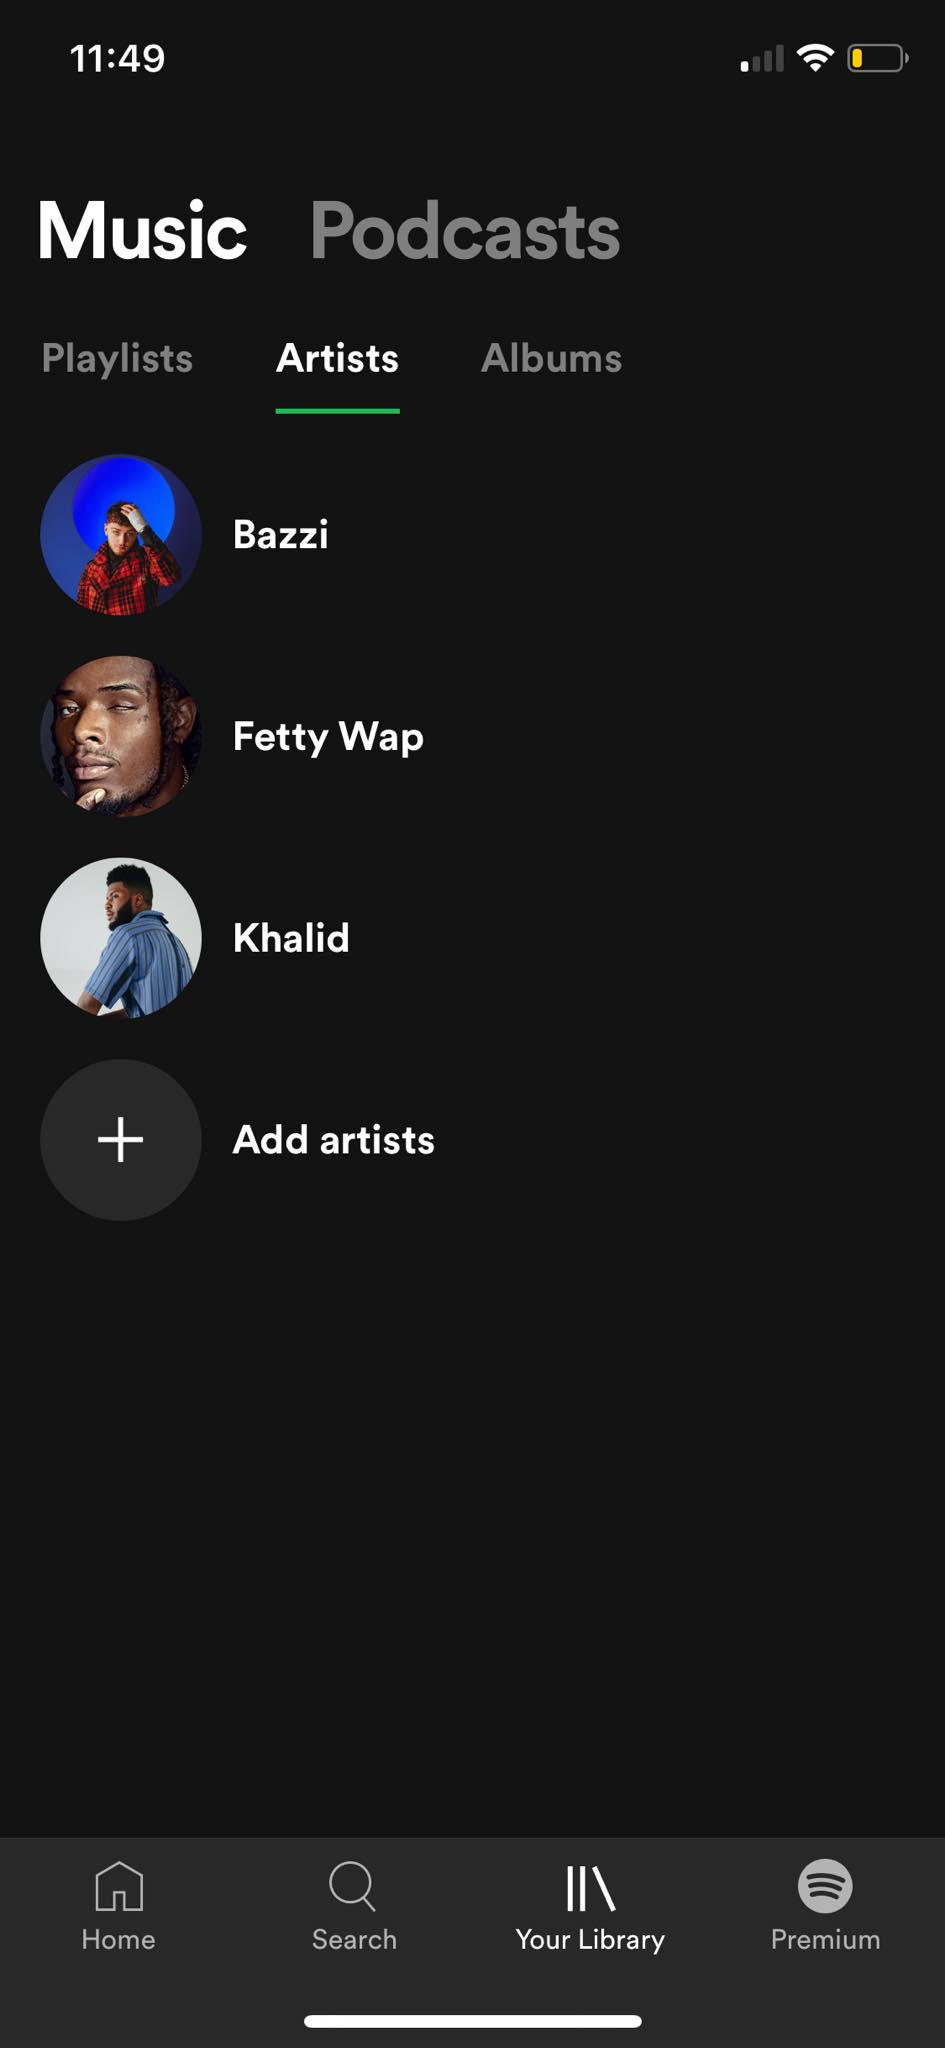 Artists on iOS by Spotify